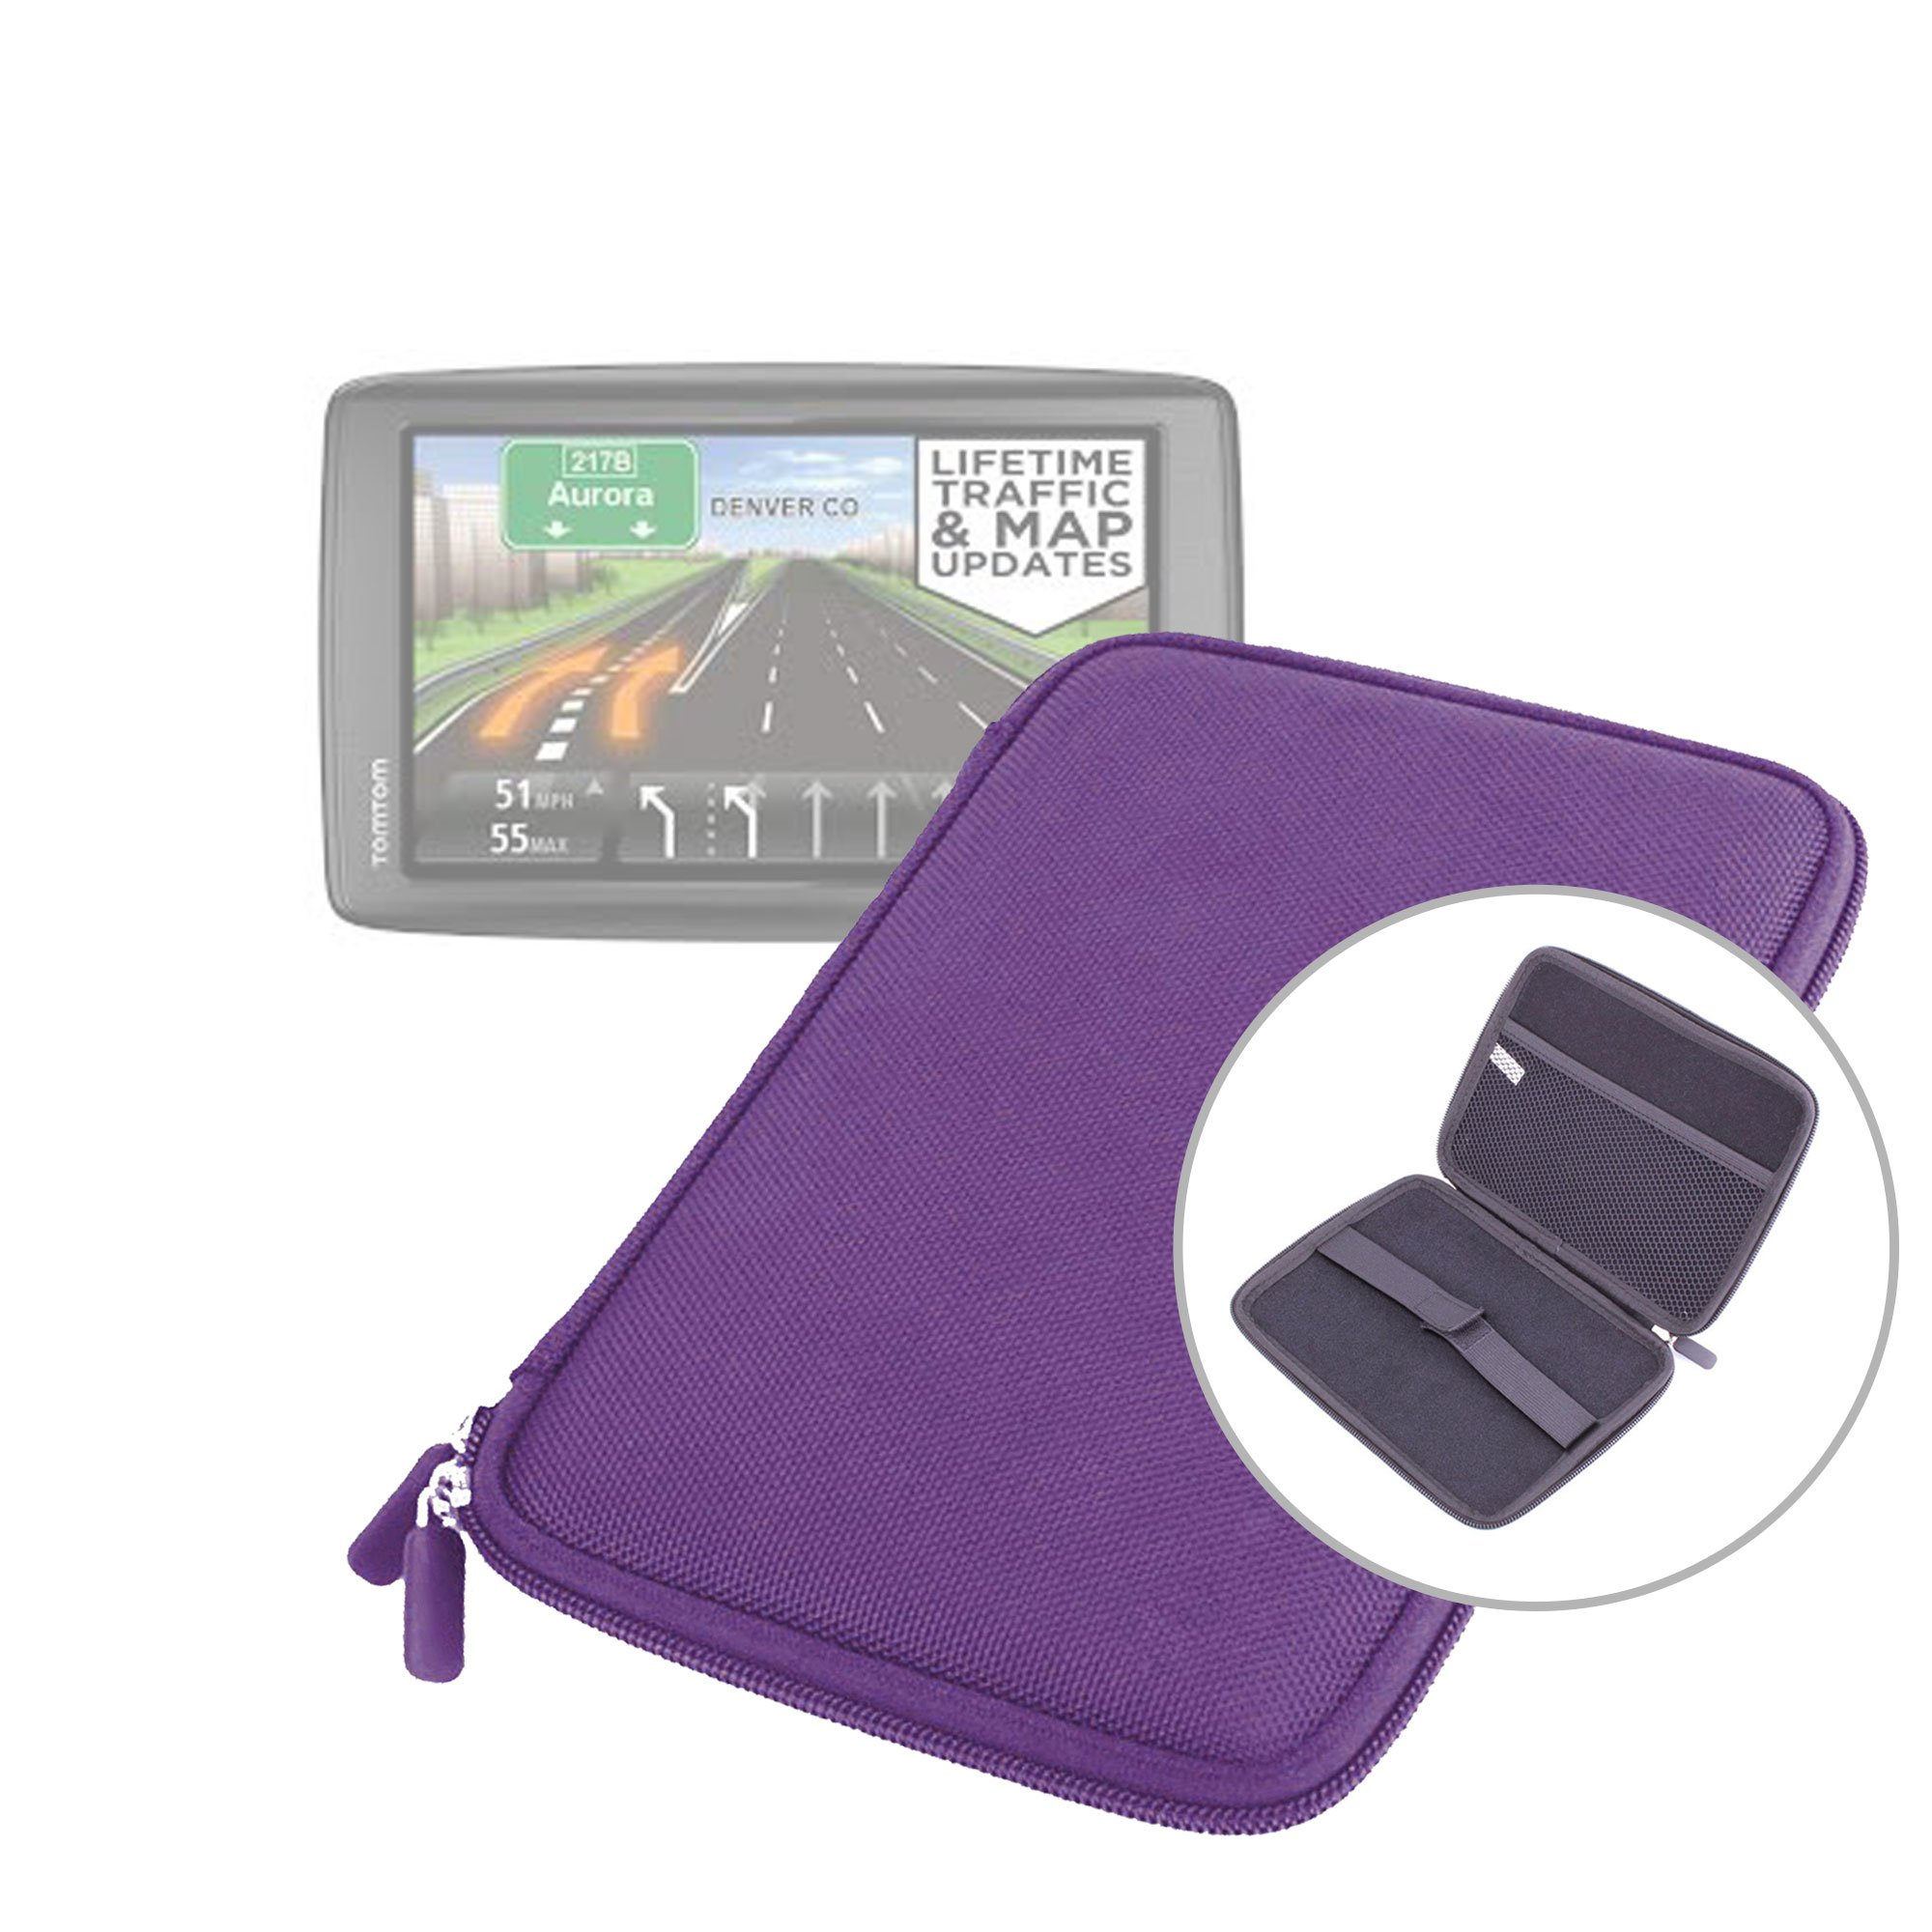 DURAGADGET Purple Shell Hard EVA Cover Case and Cover with Dual Zips for TomTom VIA 1605TM 6-Inch GPS Navigator with Lifetime Traffic & Maps & TomTom VIA 1605M GPS Navigator with Lifetime Maps